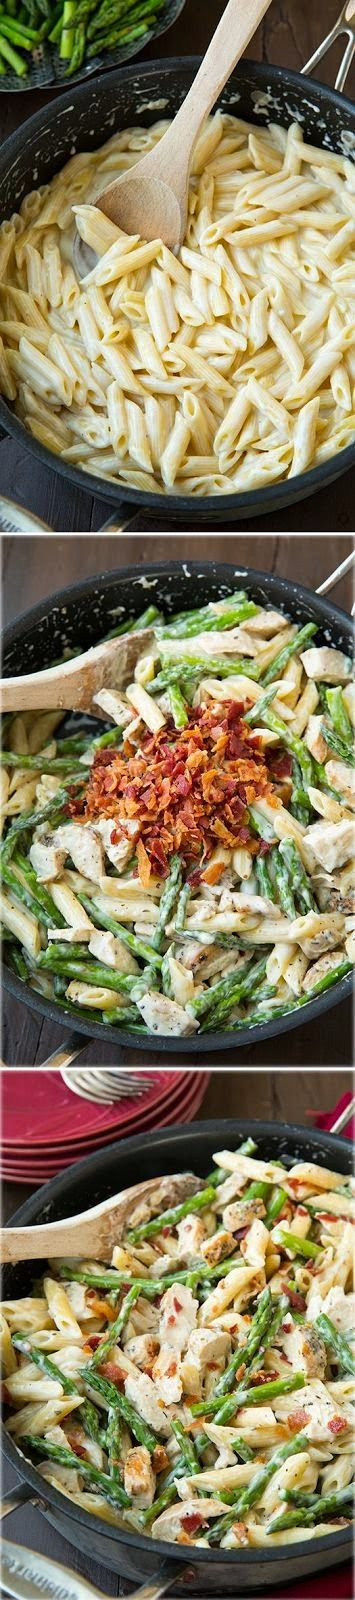 chrome hearts sunglasses celebrity wearing sunglasses 2013 Creamy Chicken and Asparagus Pasta with Bacon